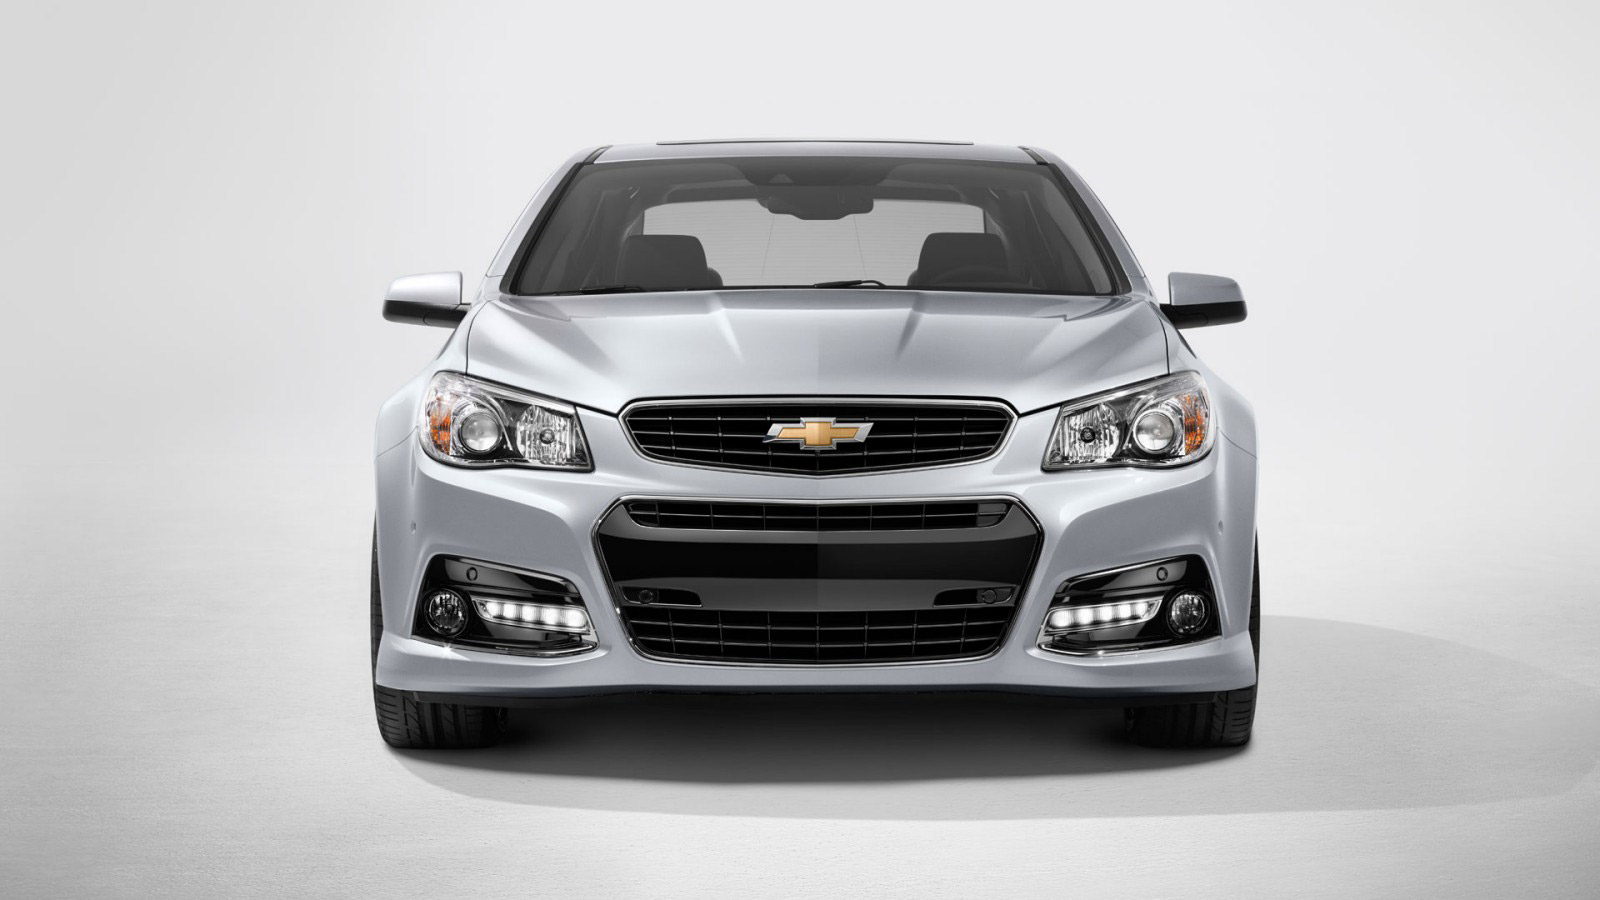 2014 Chevy SS Vs  2009 Pontiac G8 GXP: Here's What's Different